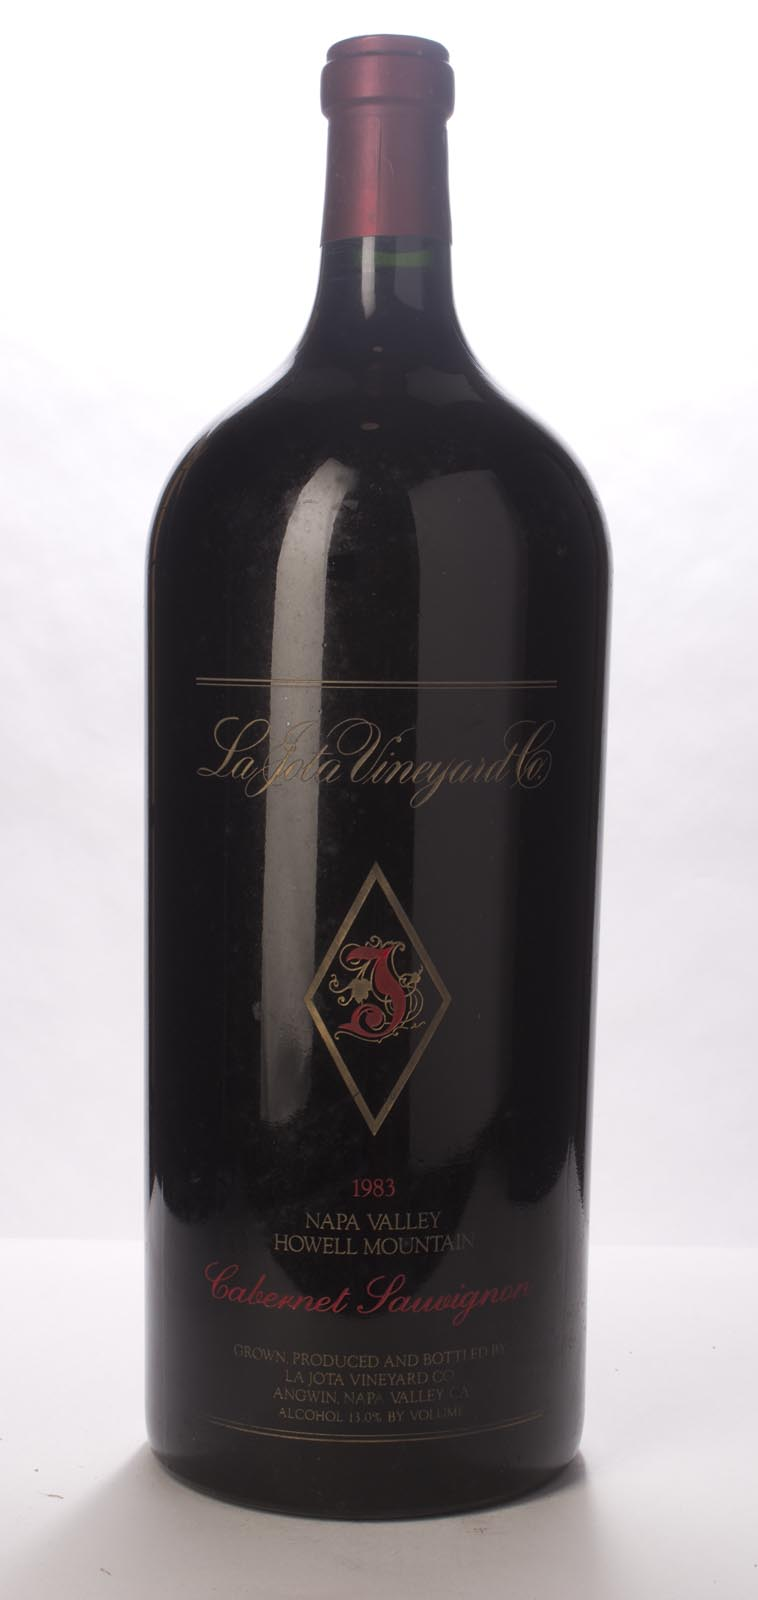 La Jota Cabernet Sauvignon Howell Mountain 1983, 6L (WS90) from The BPW - Merchants of rare and fine wines.